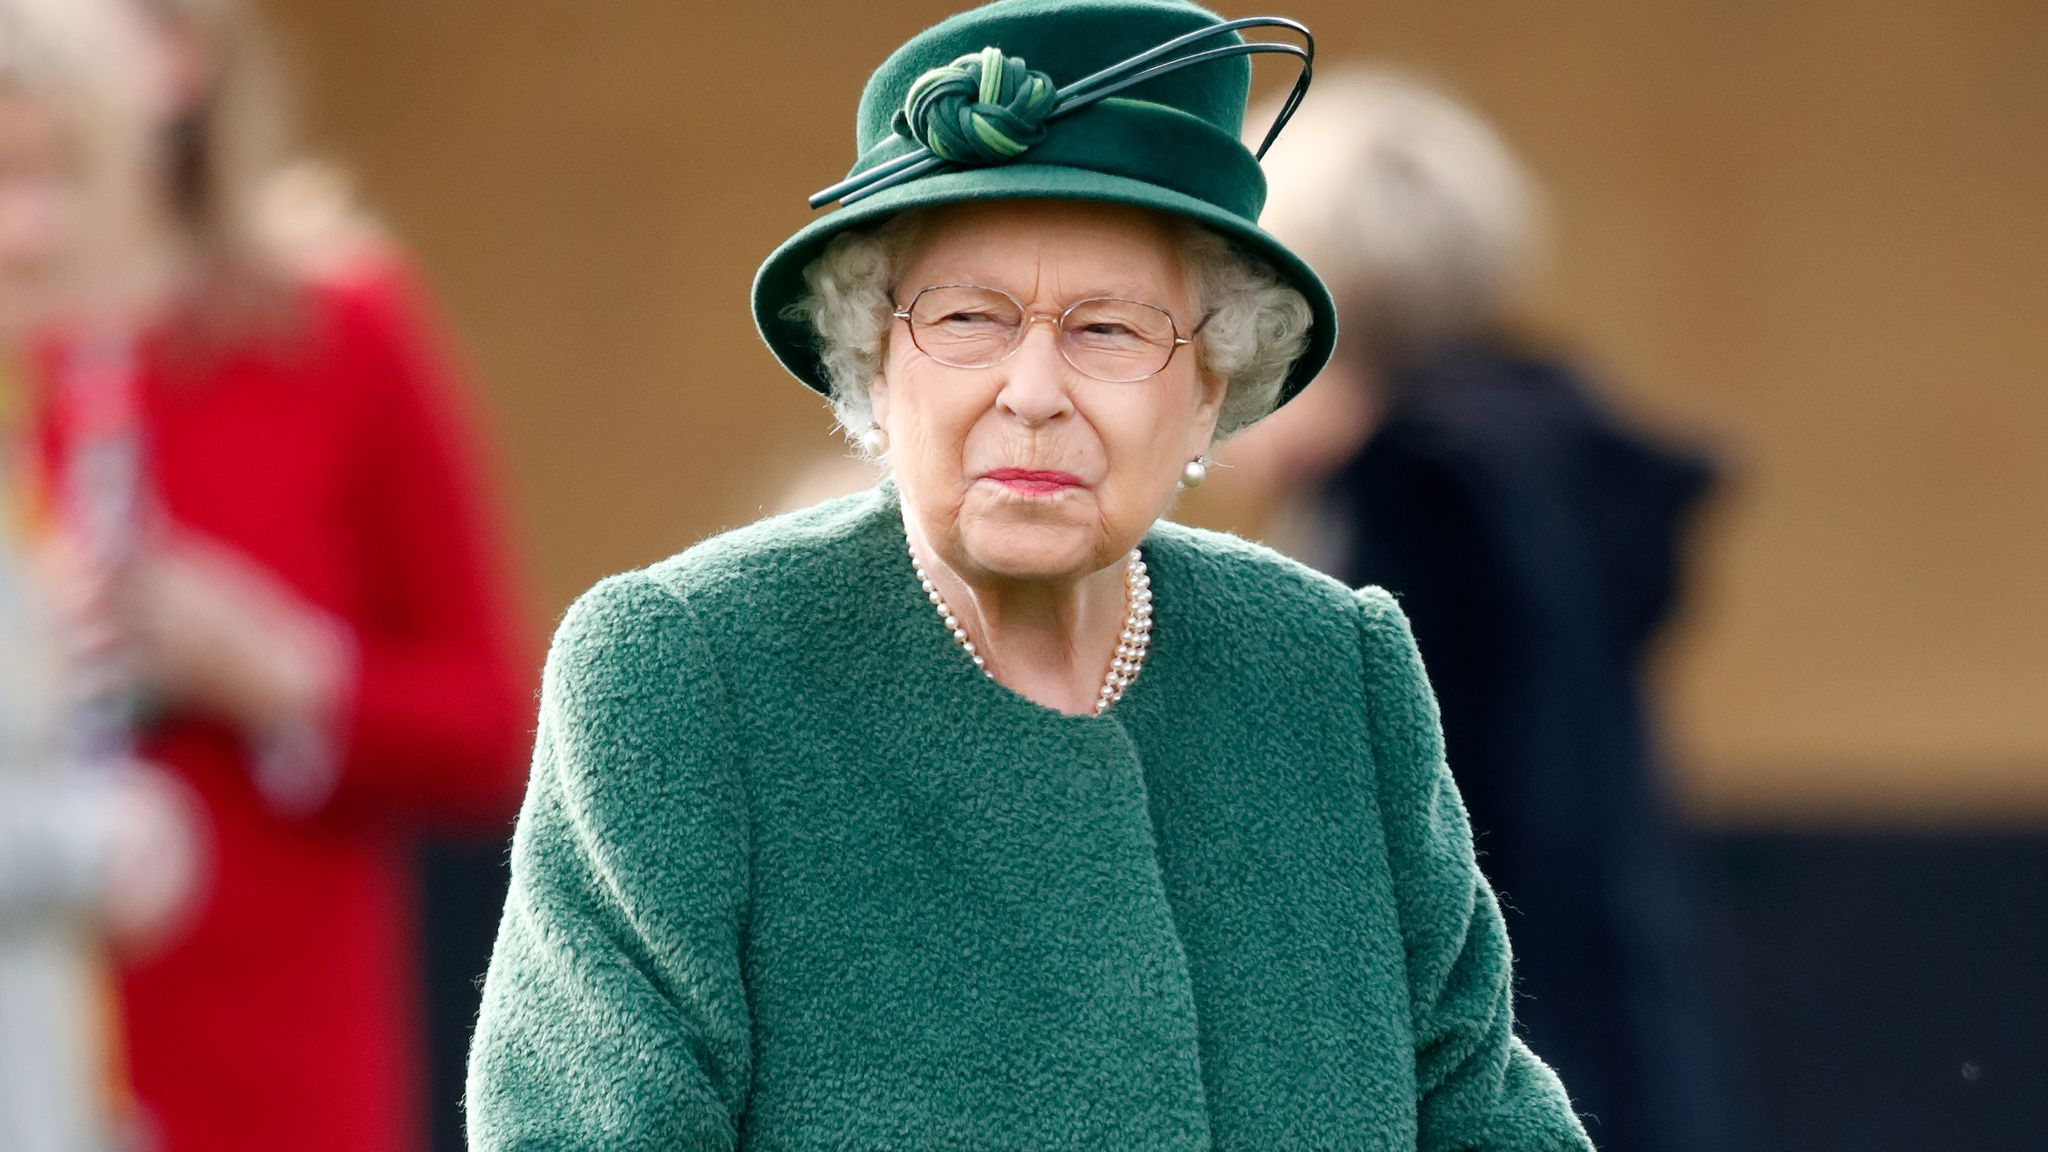 Queen approves PM request to suspend parliament - cutting time to block no-deal Brexit